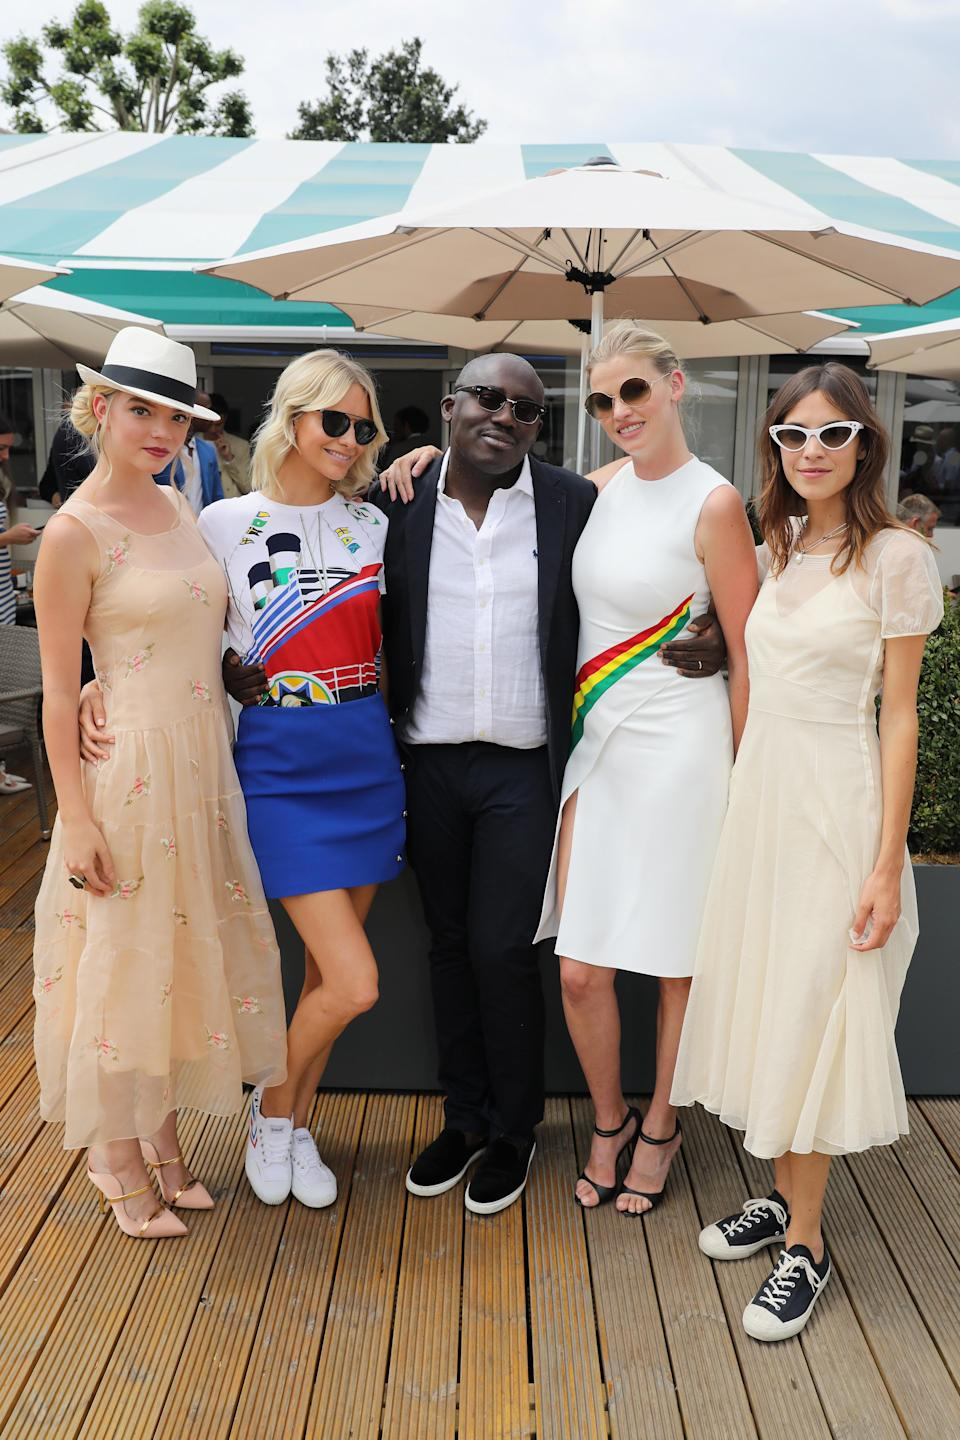 <p>For the Polo Ralph Lauren and British Vogue event at Wimbledon on 9 July, the fash pack donned their finest clobber. Editor-in-chief Edward Enninful was joined by Anya Taylor-Joy, Poppy Delevingne, Edward Enninful, Lara Stone and Alexa Chung at the tournament. <em>[Photo: Getty]</em> </p>